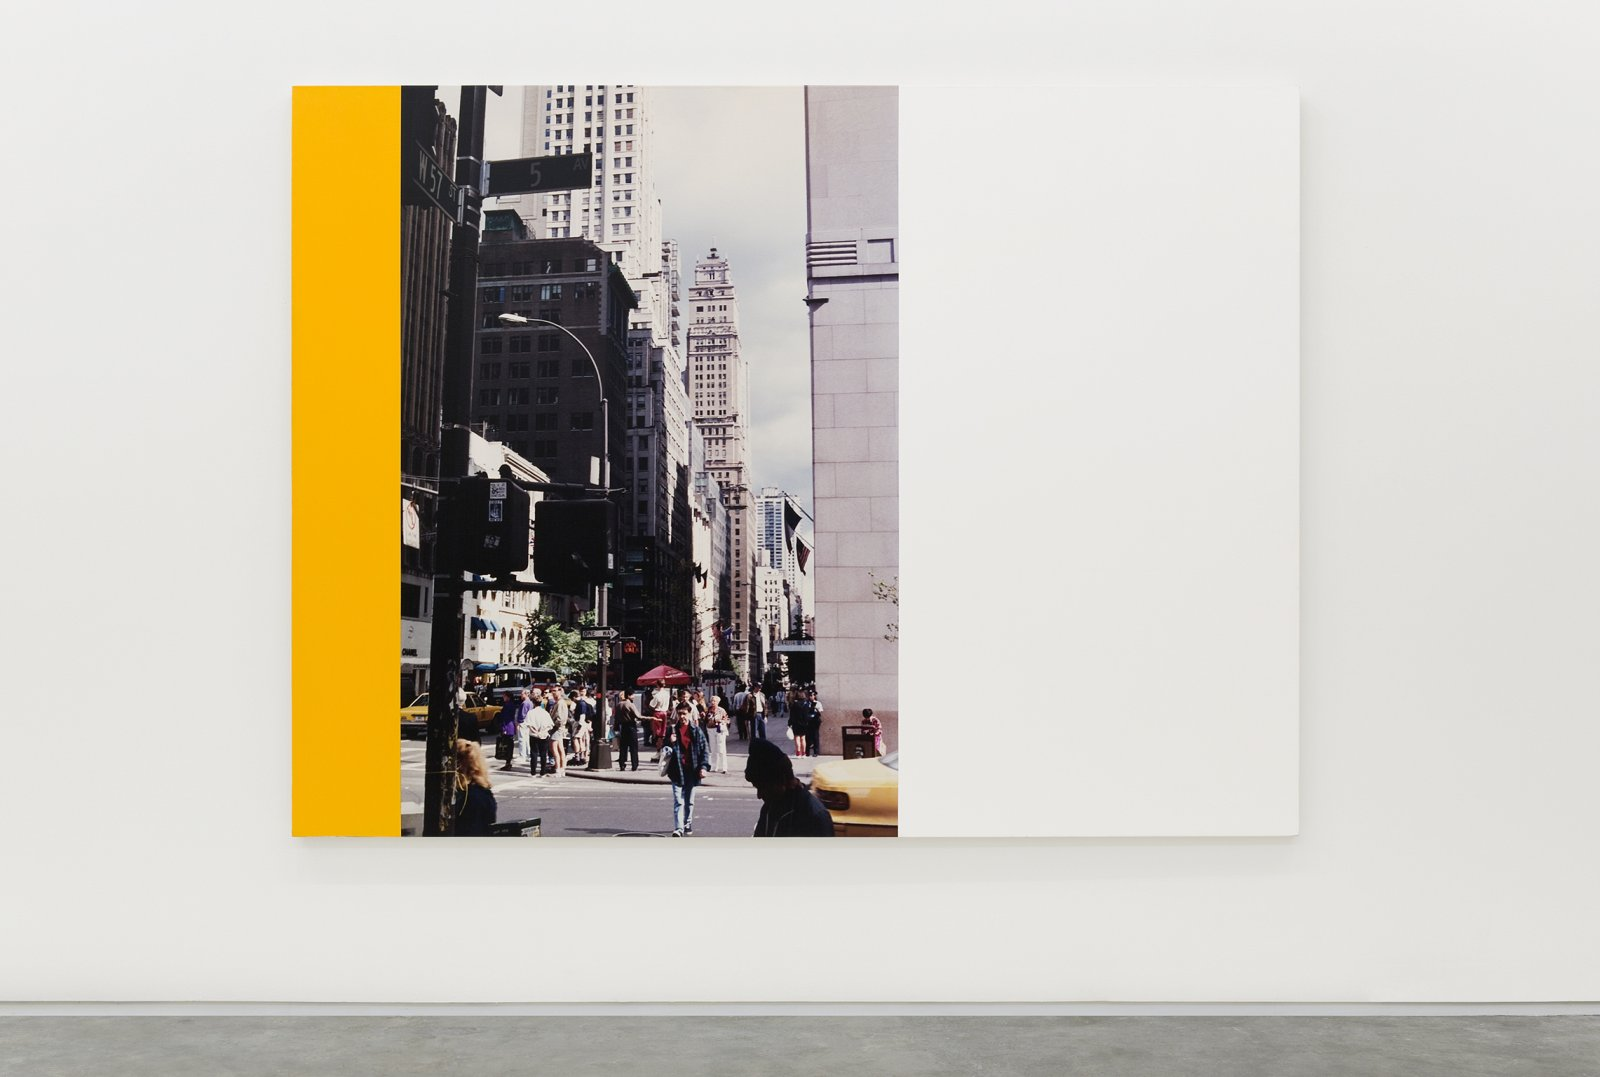 Ian Wallace, New York City (5th & 57th) I, 1993–2001, acrylic and photolaminate on canvas, 96 x 72 in. (244 x 183 cm)